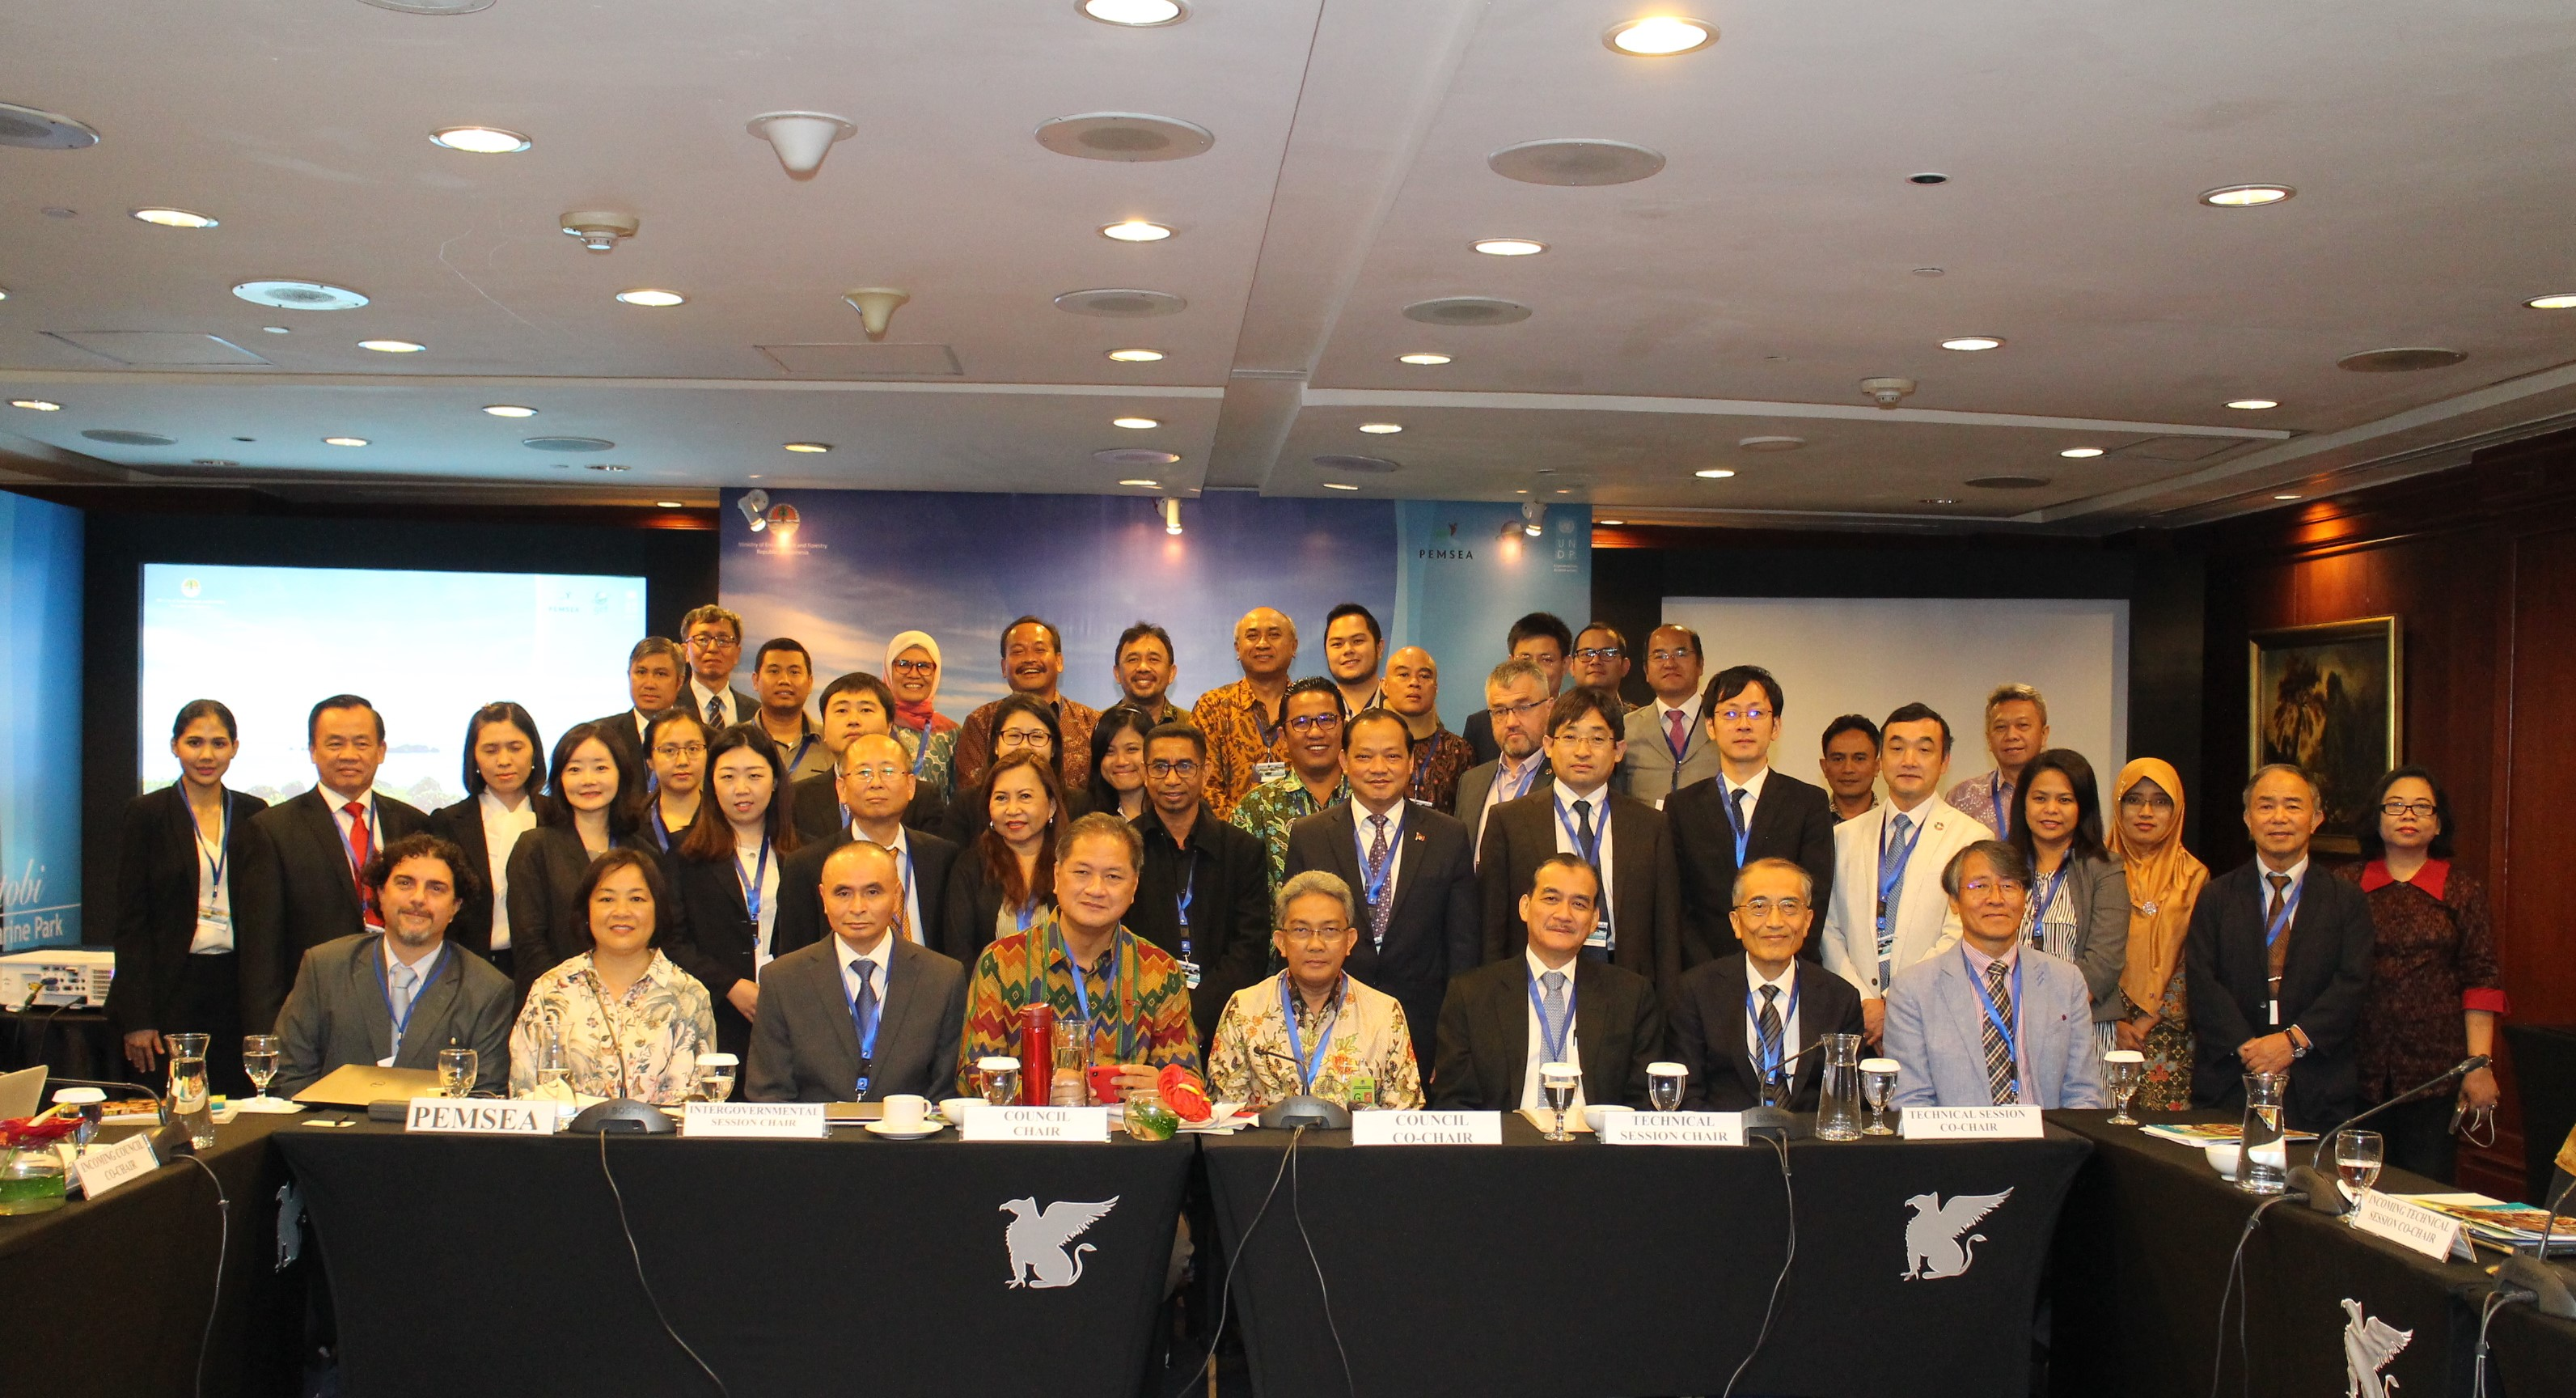 Attendees of the 11th EAS Partnership Council Meeting pose for a group photo